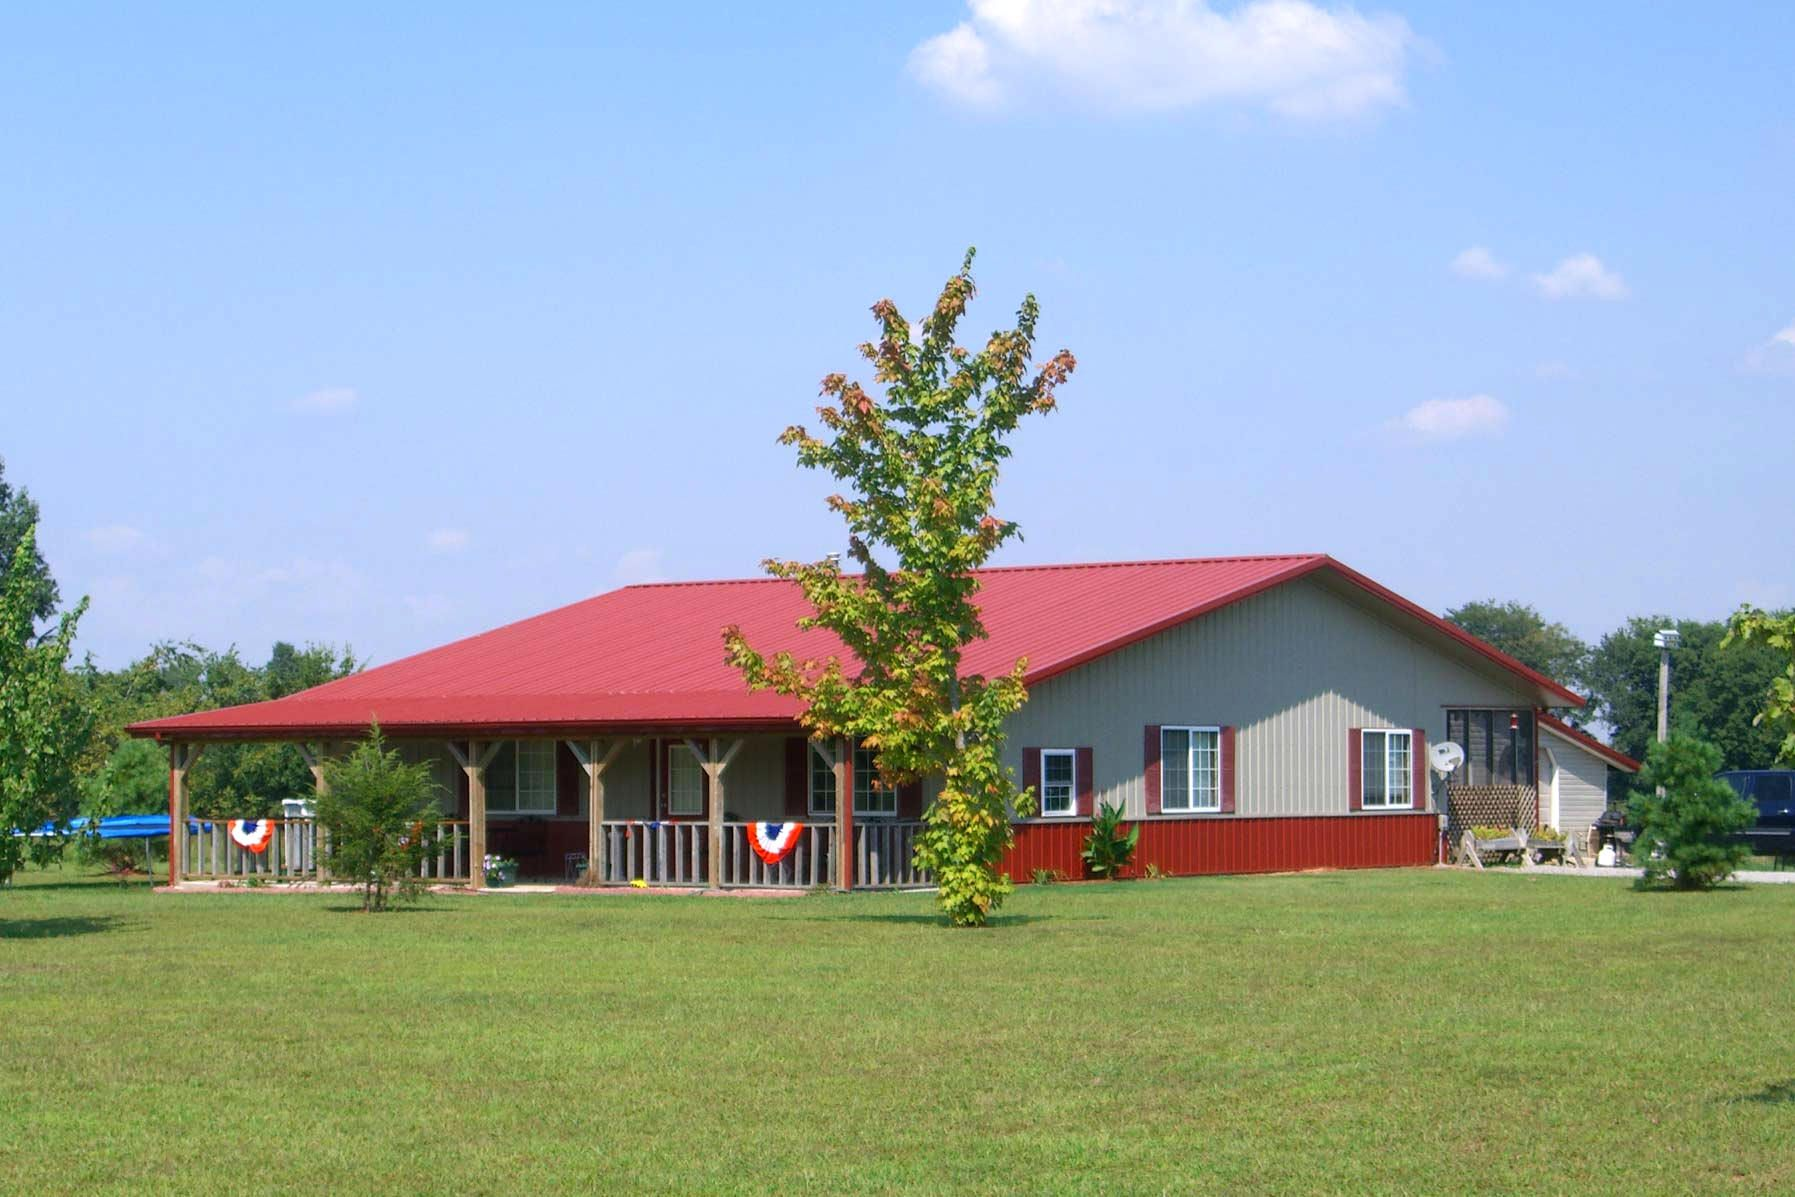 Metal Building Design Ideas elegant red metal building home can be decor with white door can add the beauty inside 3d church building design ideas Building A Pole Barn House Daily Woodworking March 2015